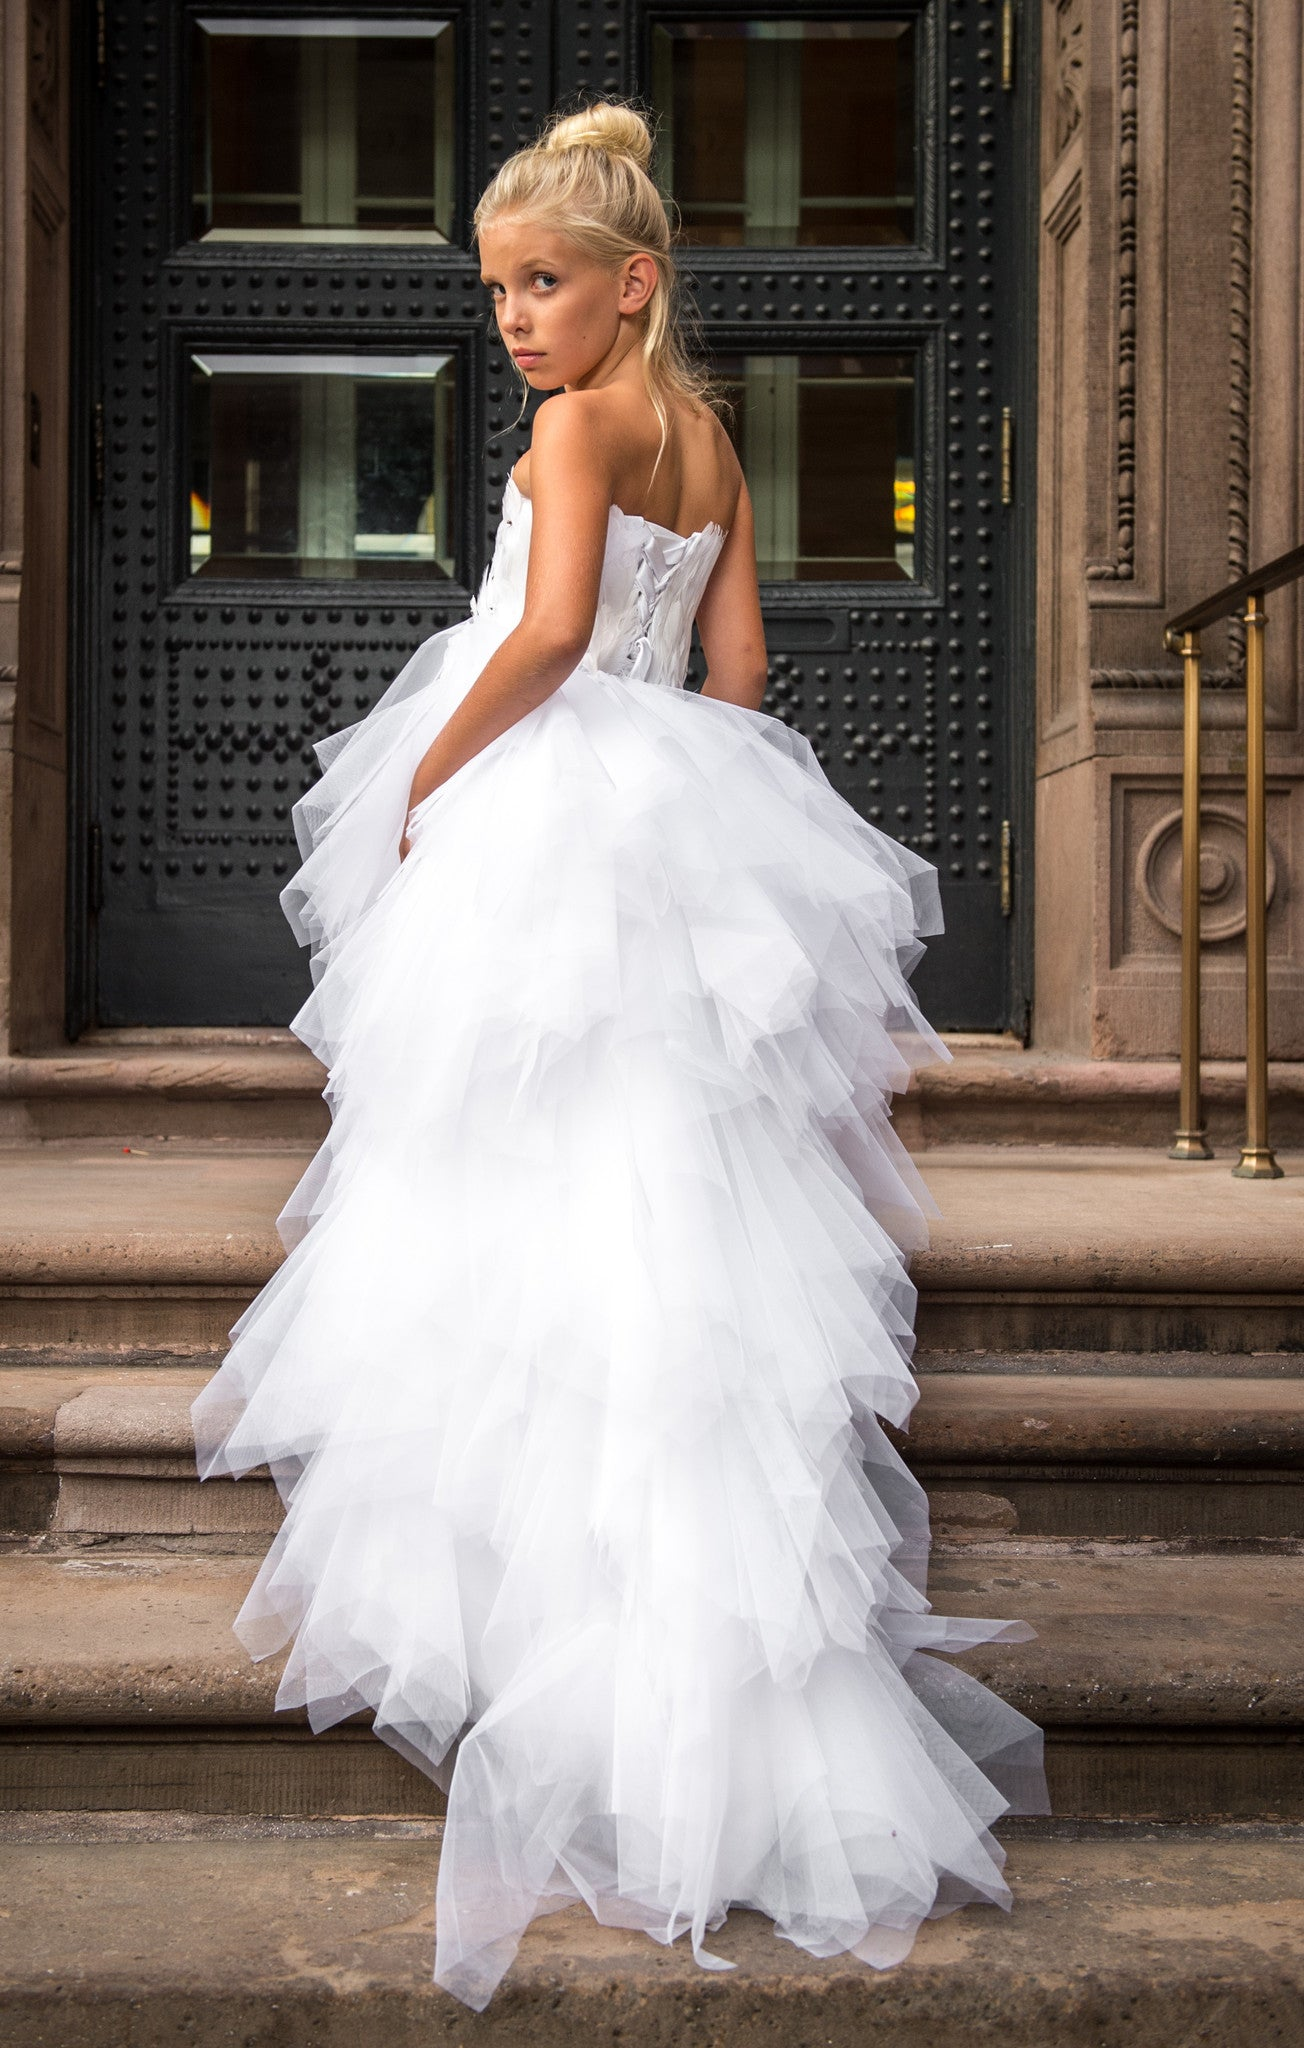 """The Swan Princess""... A Gorgeous Feather and Tulle Flower Girls Dress"